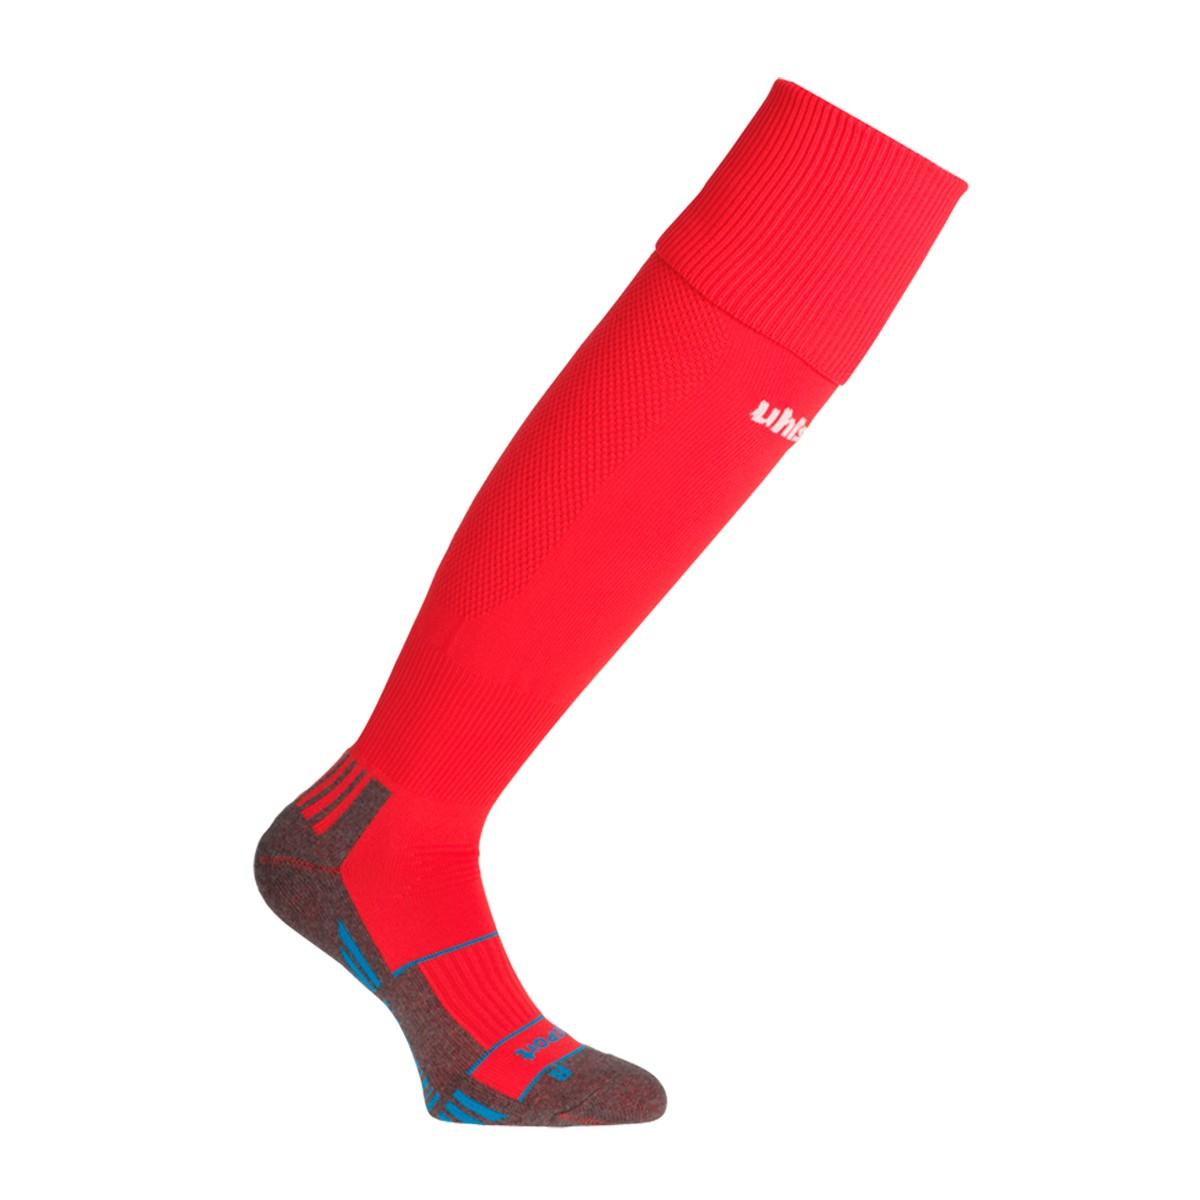 a927569ff Football Socks Uhlsport Team Pro Player Red-White - Football store ...